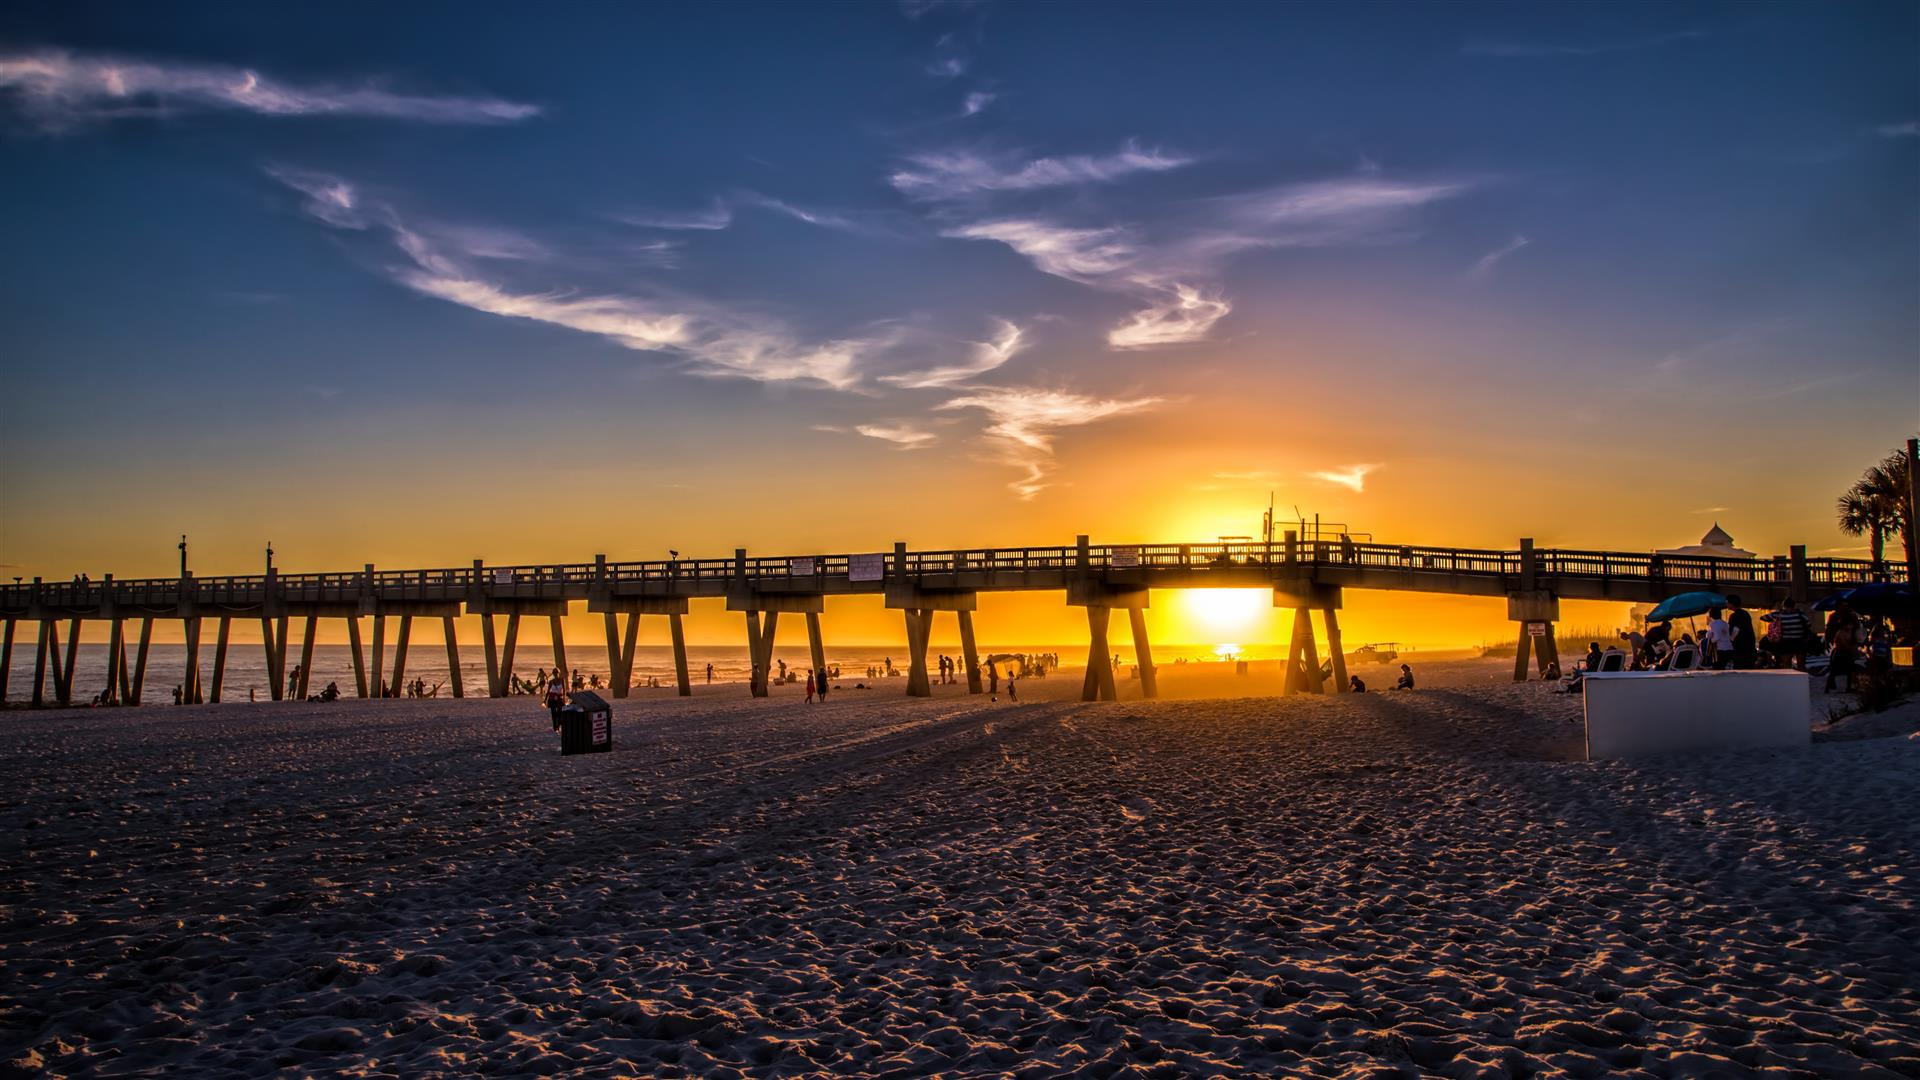 why buy pensacola beach condos for sale, pensacola beach sunset